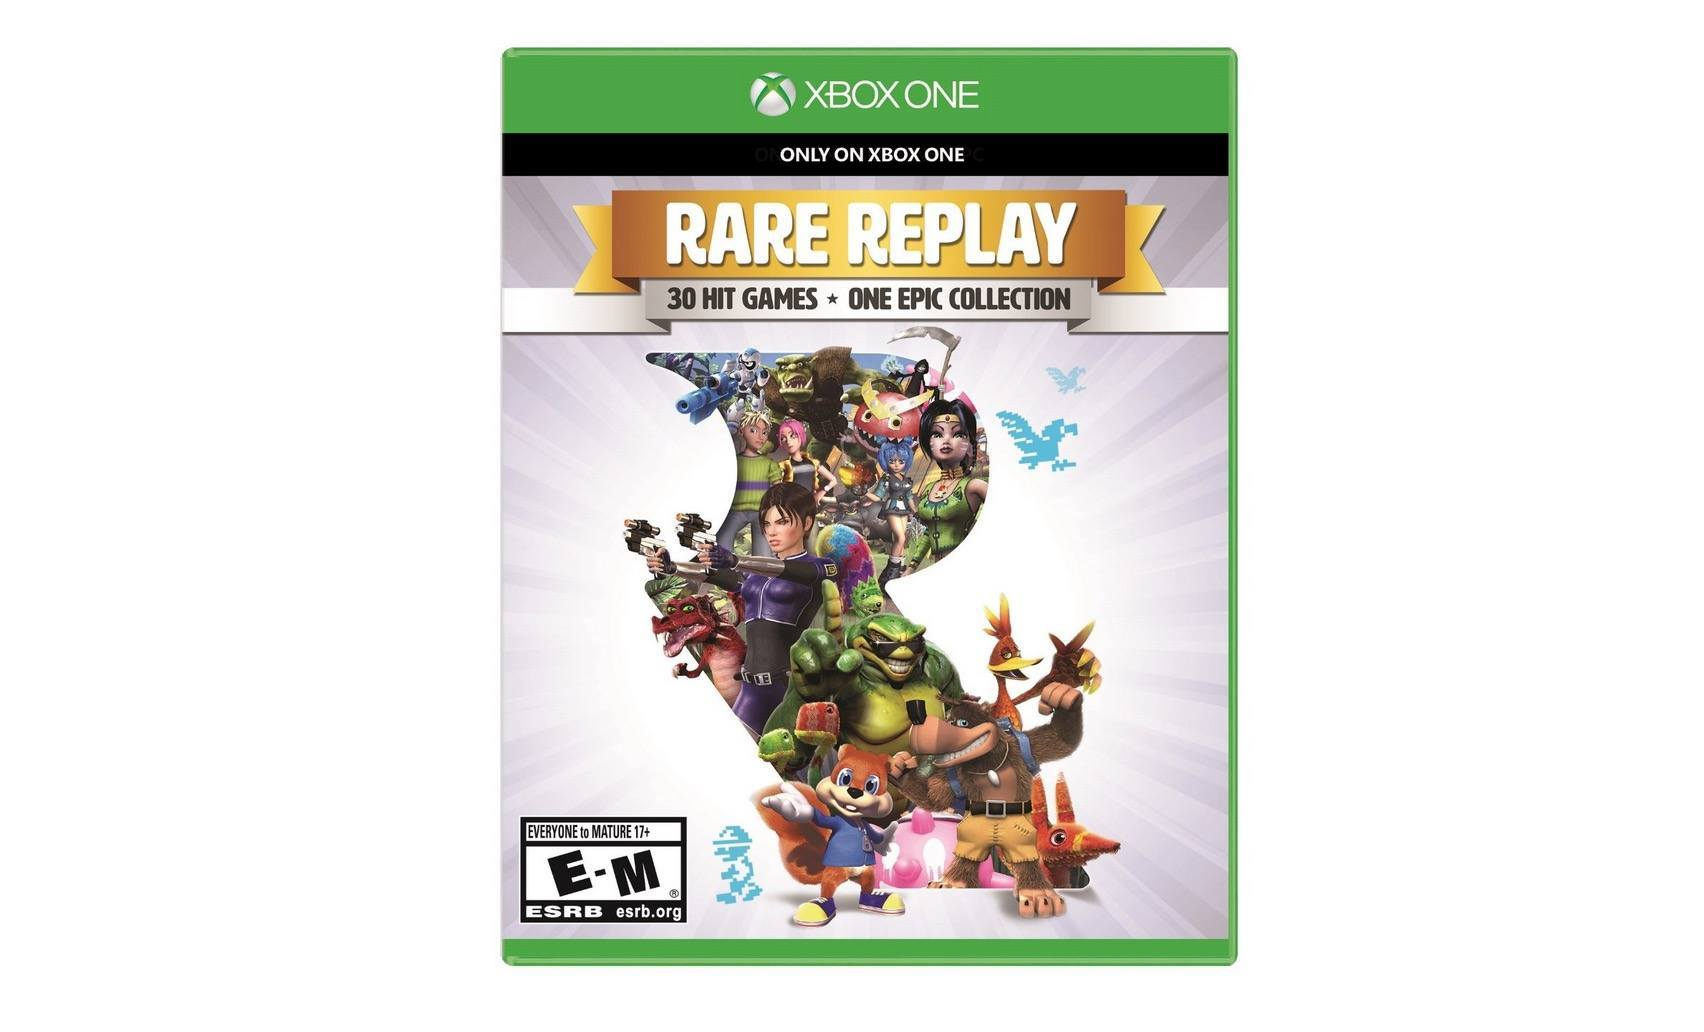 What you need to know about the Rare Replay release.